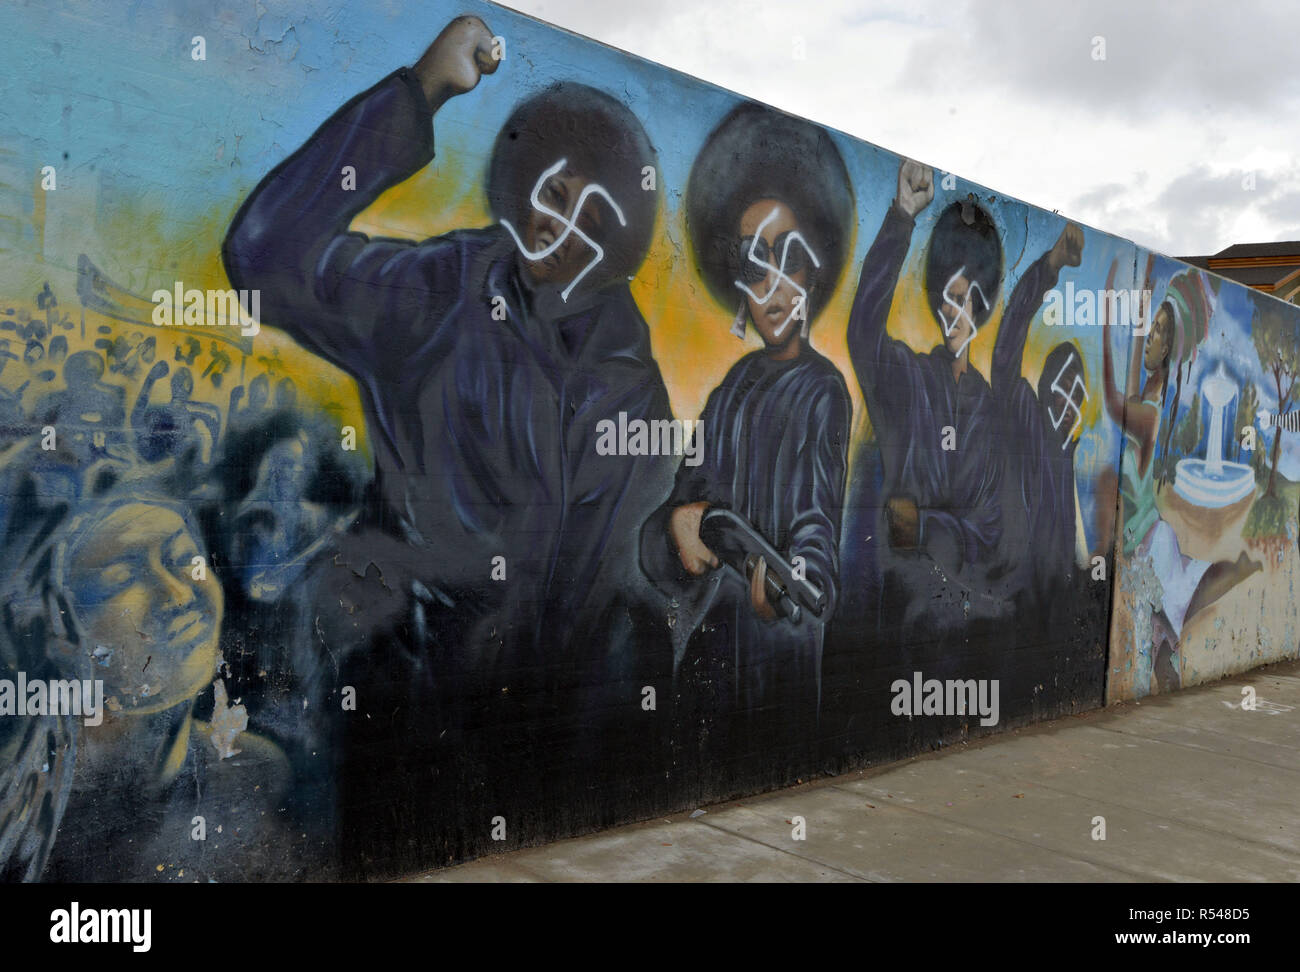 Los Angeles, Ca, USA. 29th Nov, 2018. The Crenshaw Wall Defaced with Swastika in Los Angeles, California on November 29, 2018. Credit: Koi Sojer/Snap'n U Photos/Media Punch/Alamy Live News - Stock Image